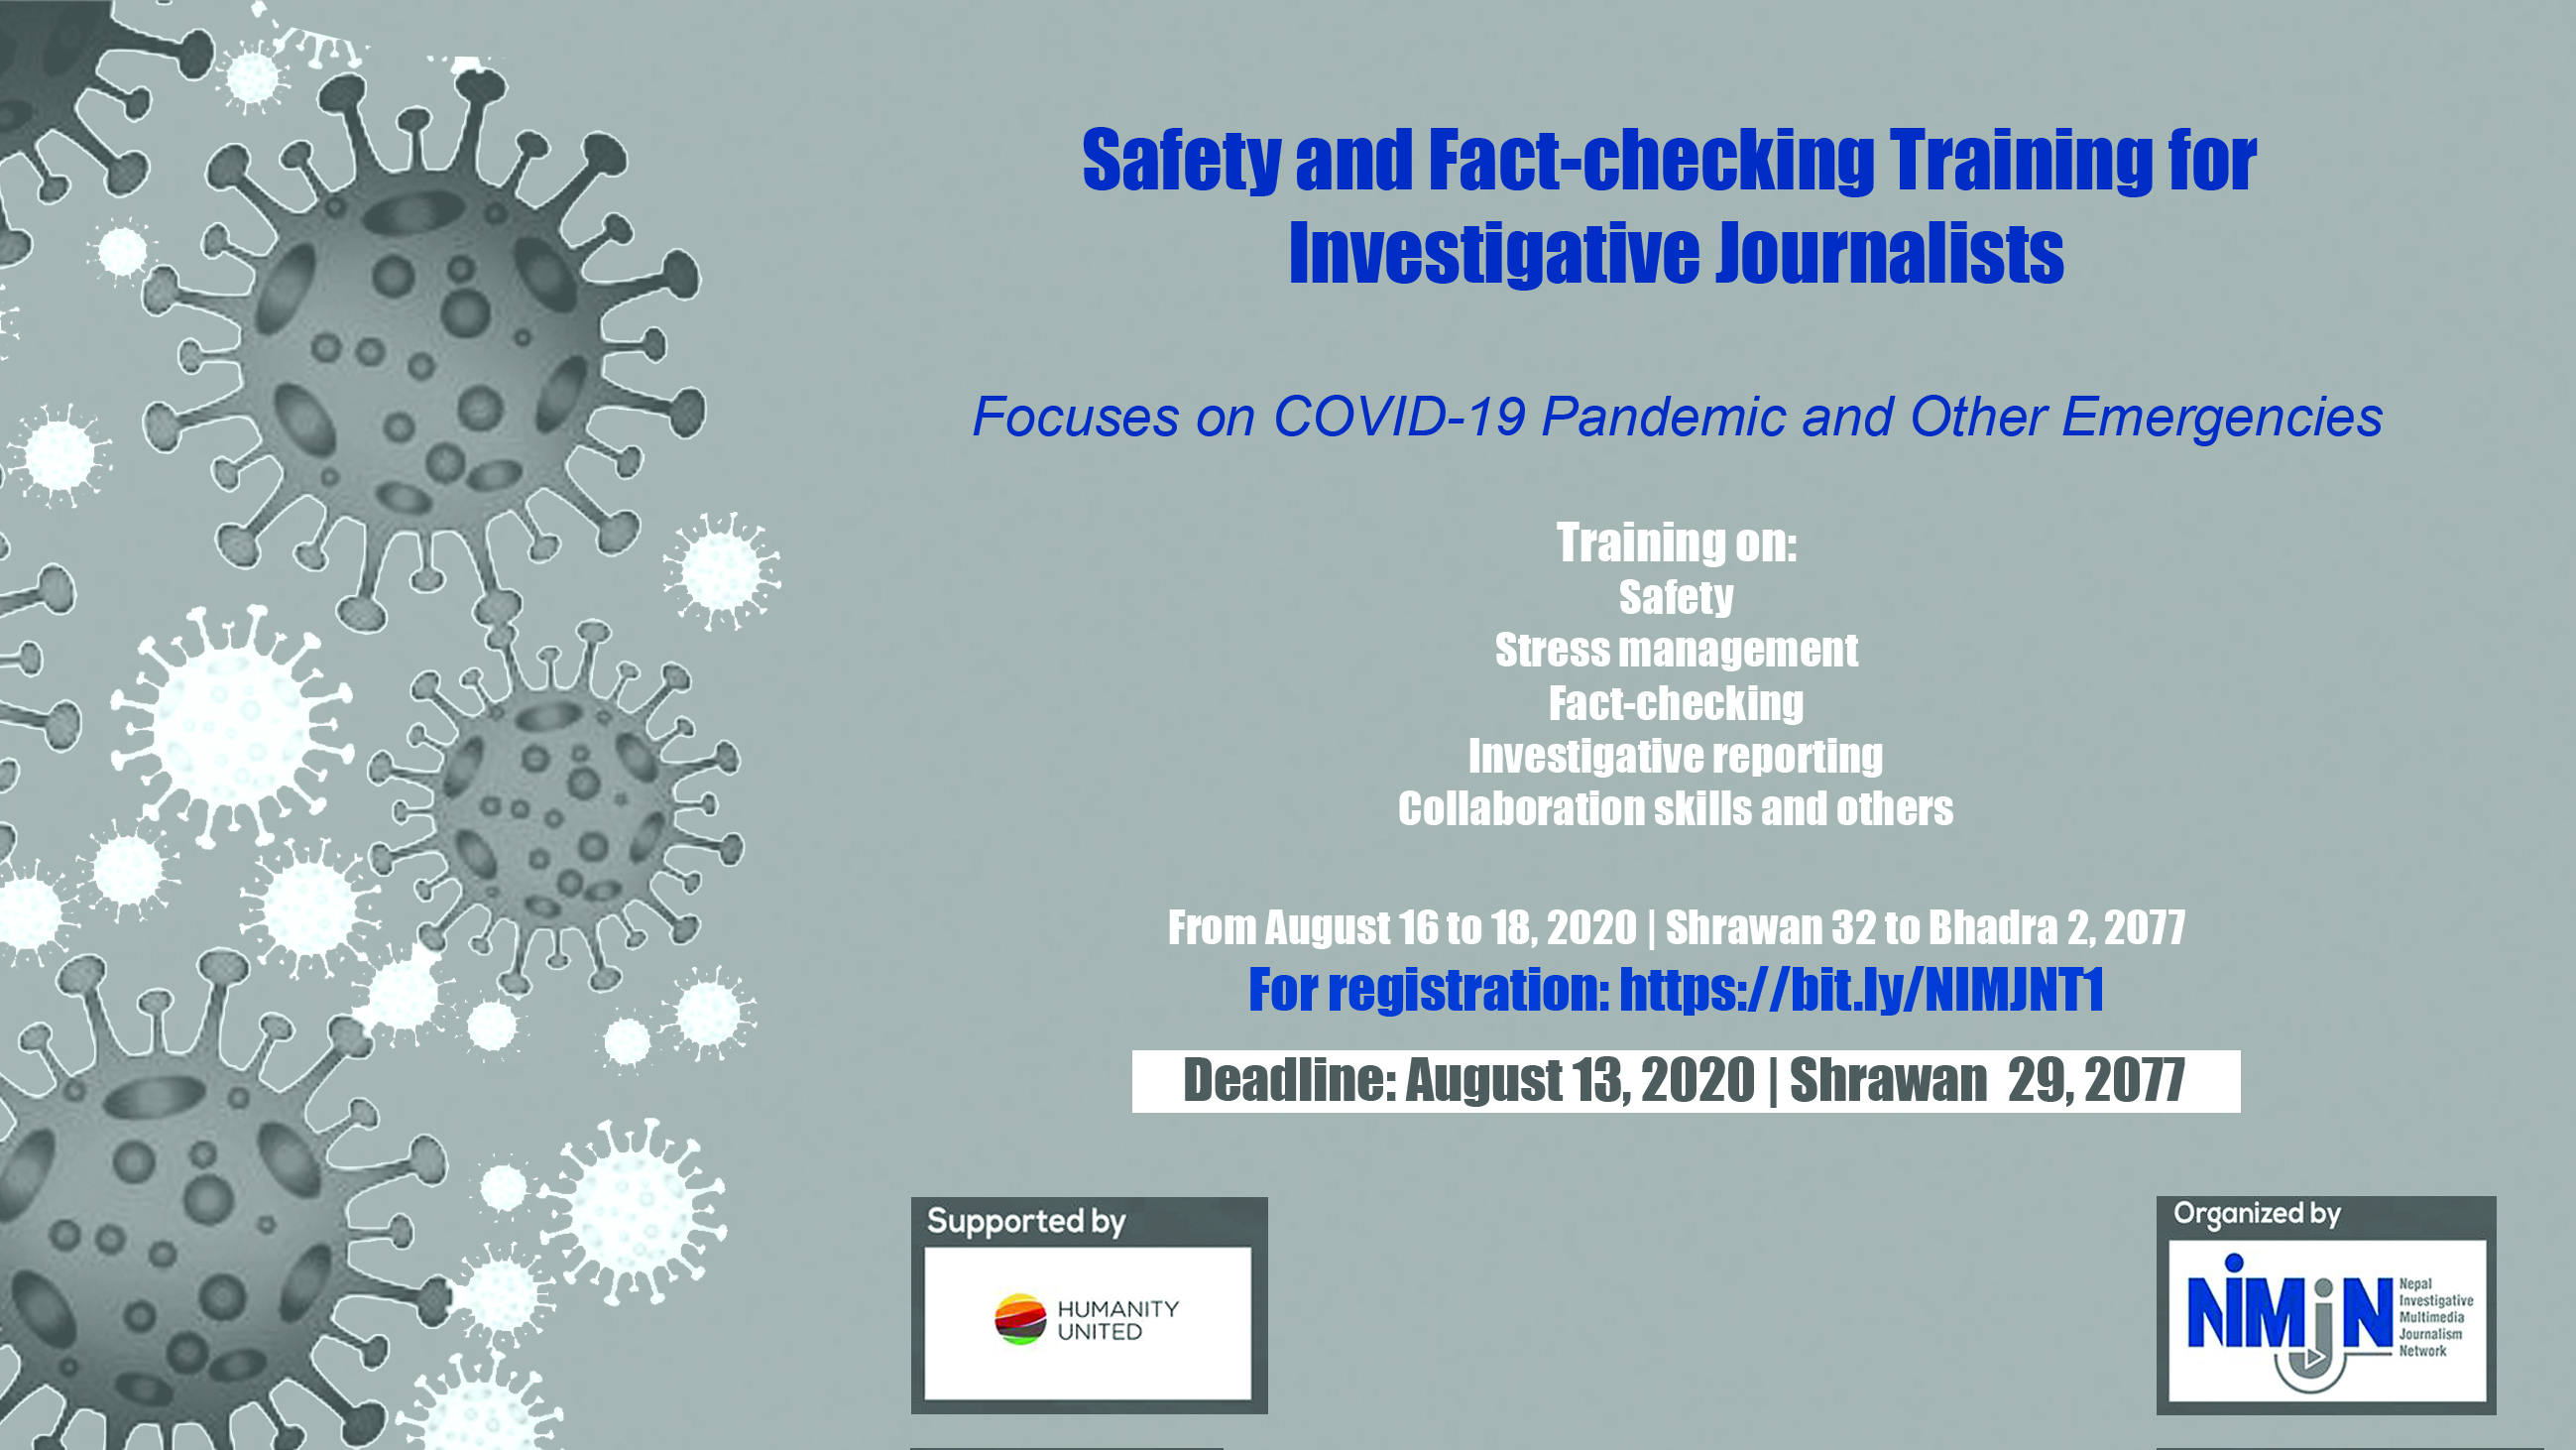 Safety and Fact-Checking Training for Investigative Journalists